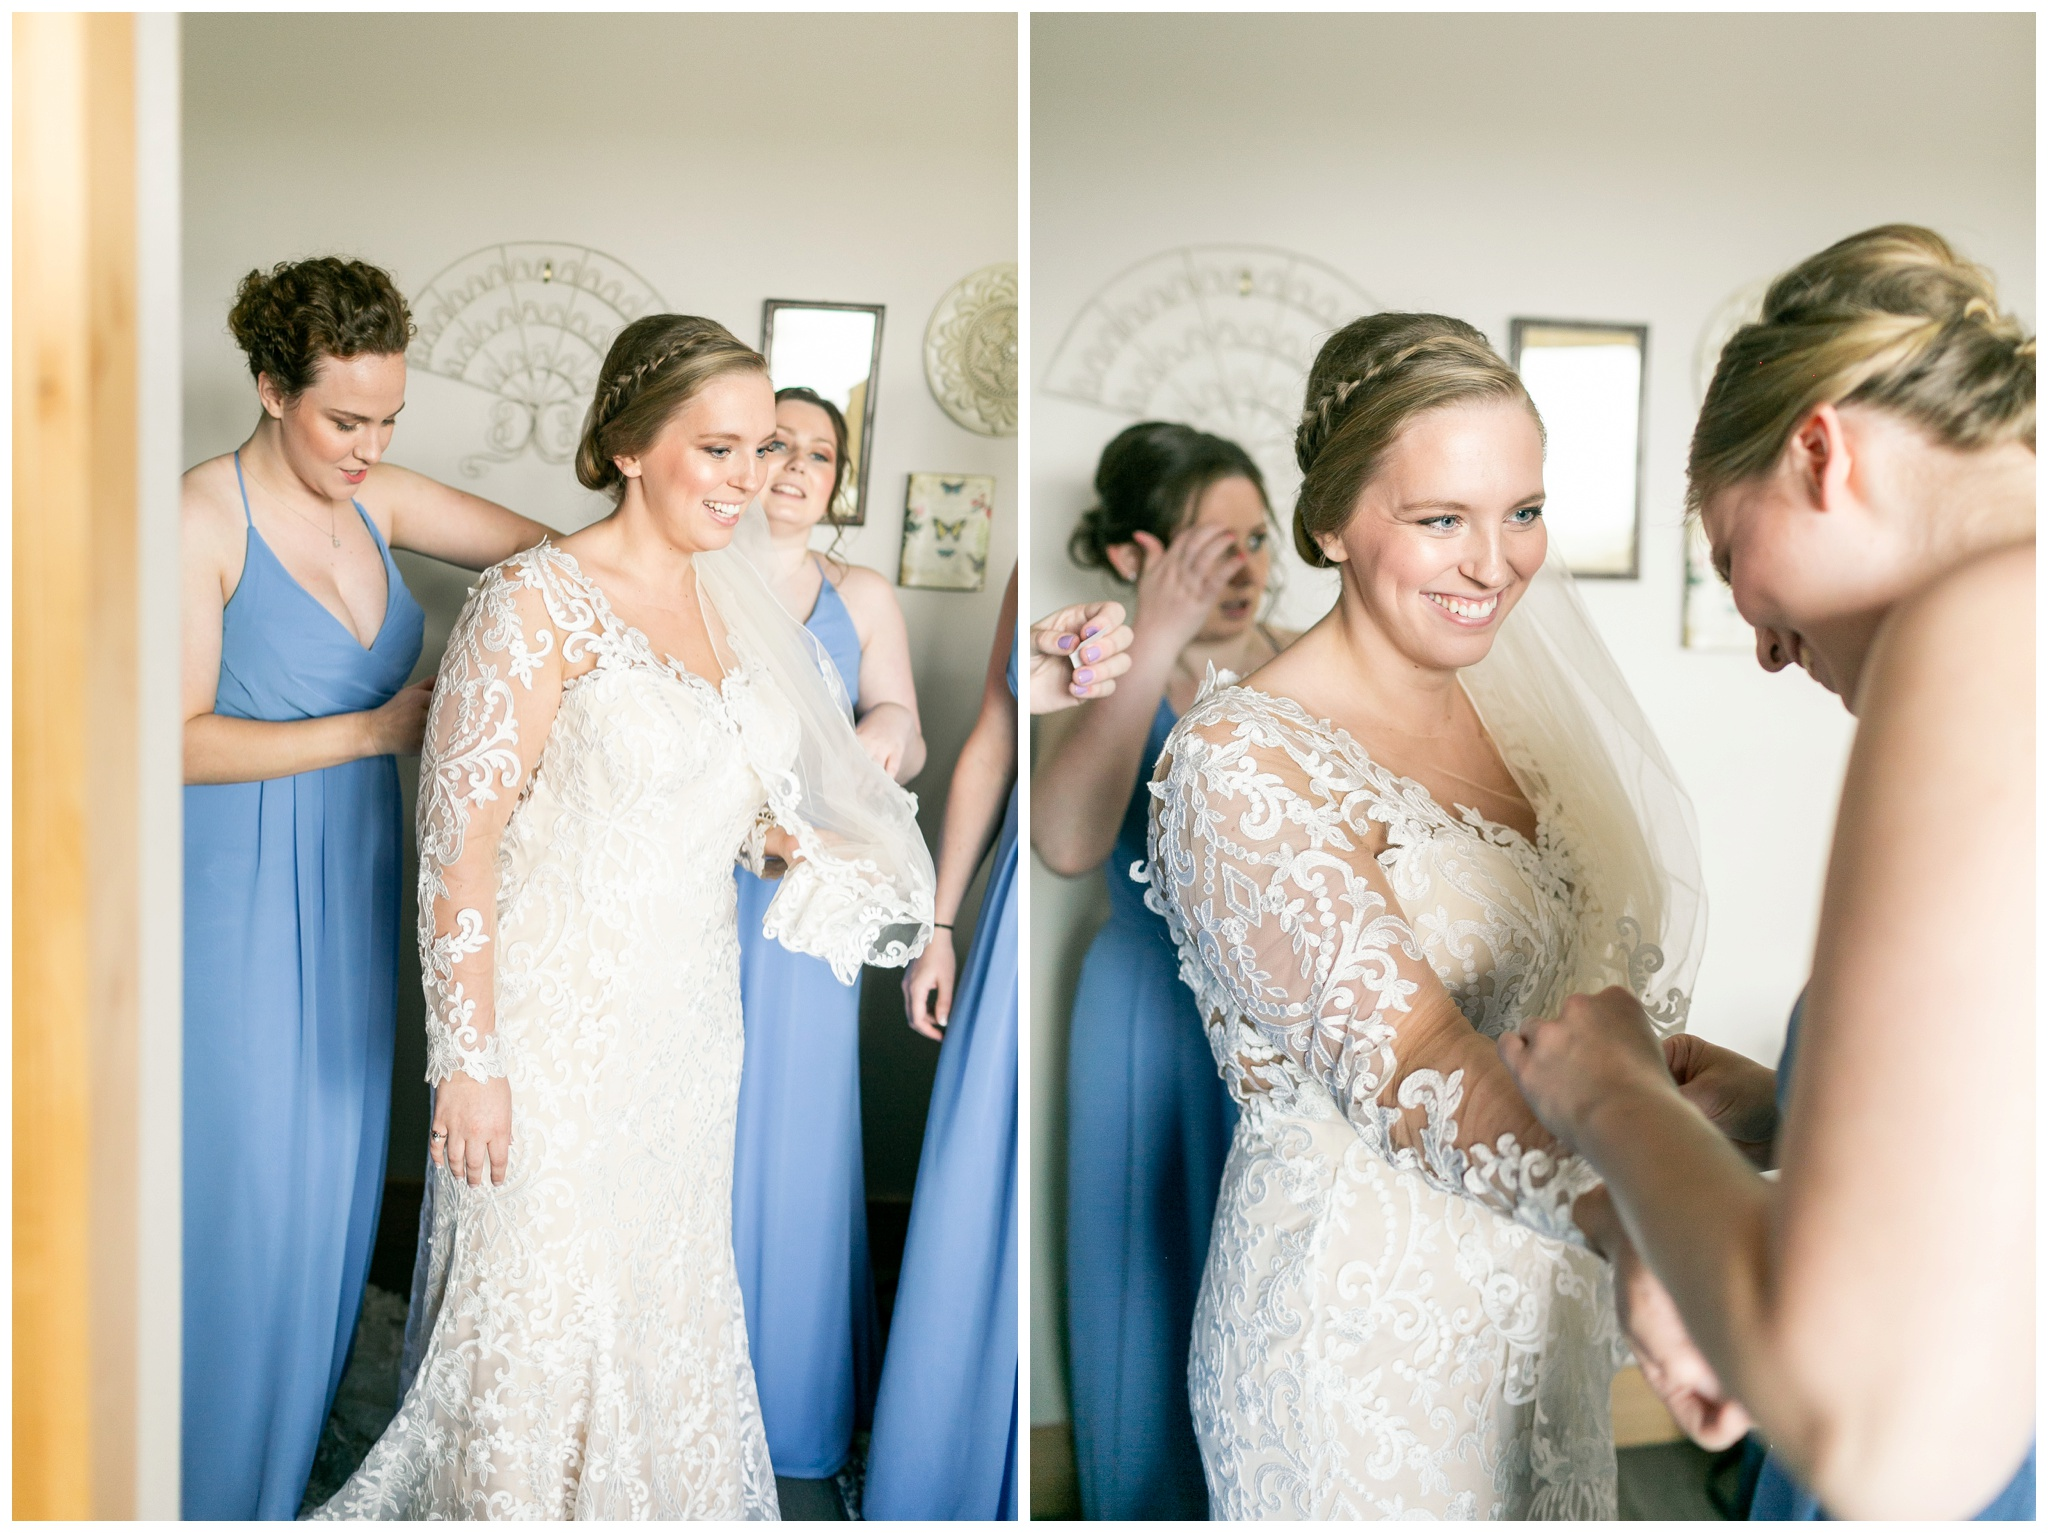 vennebu_hill_baraboo_wisconsin_wedding_madison_wisconsin_wedding_photographers_3012.jpg